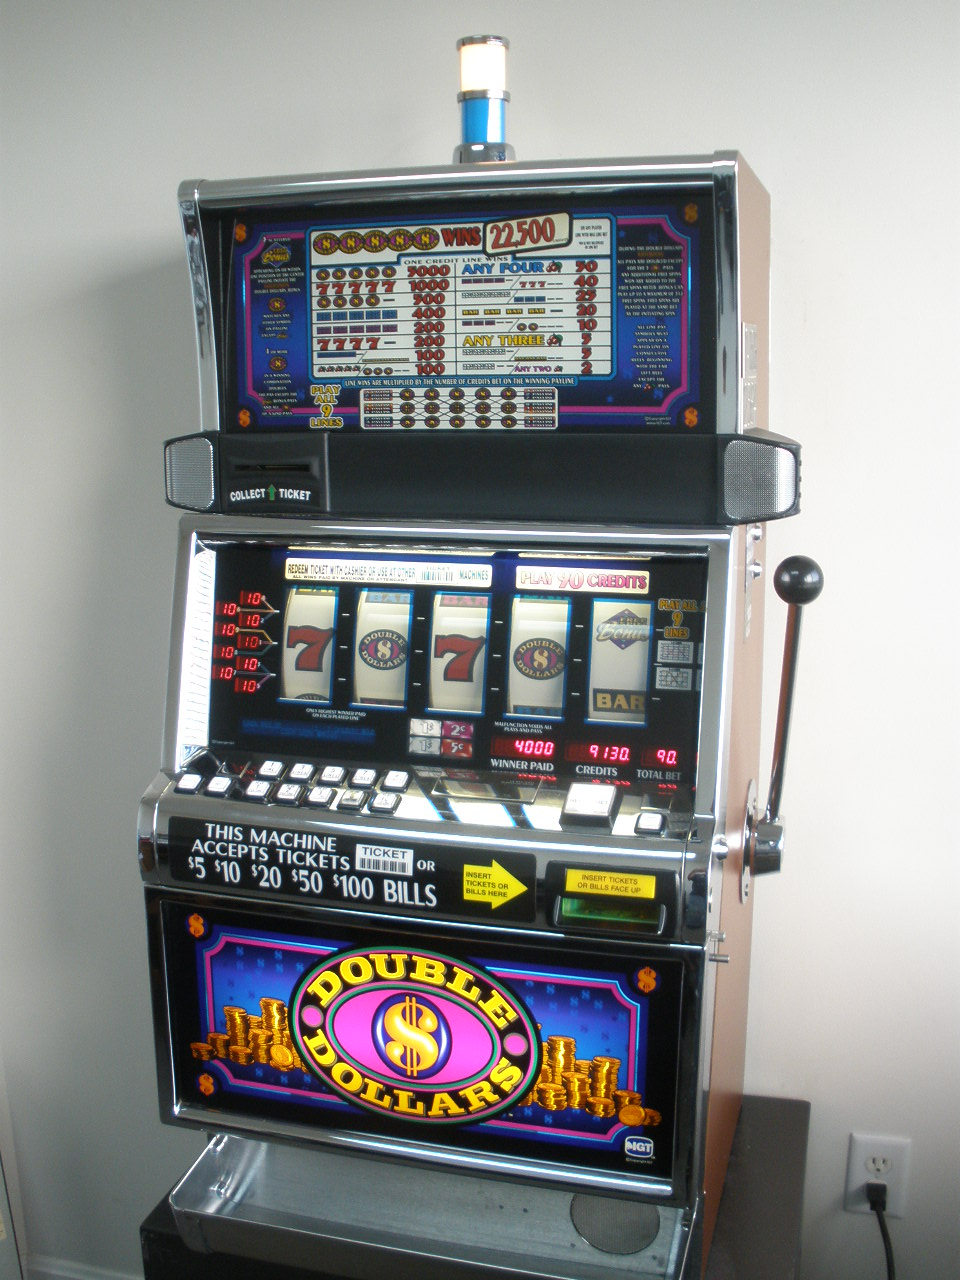 IGT DOUBLE DOLLARS FIVE REEL SLOT MACHINE WITH FREE SPIN